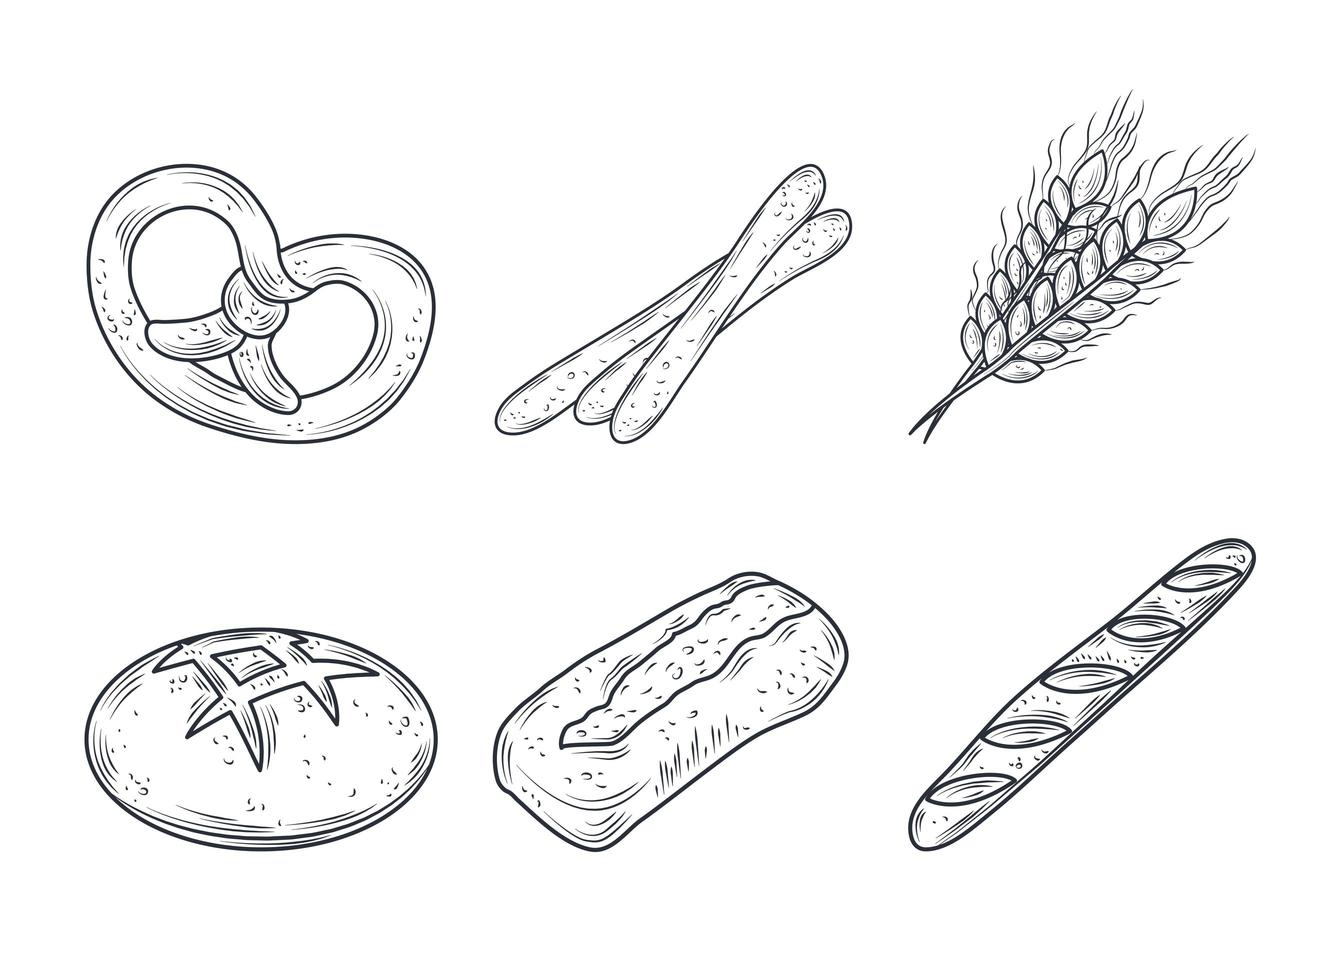 Baked goods icon set vector